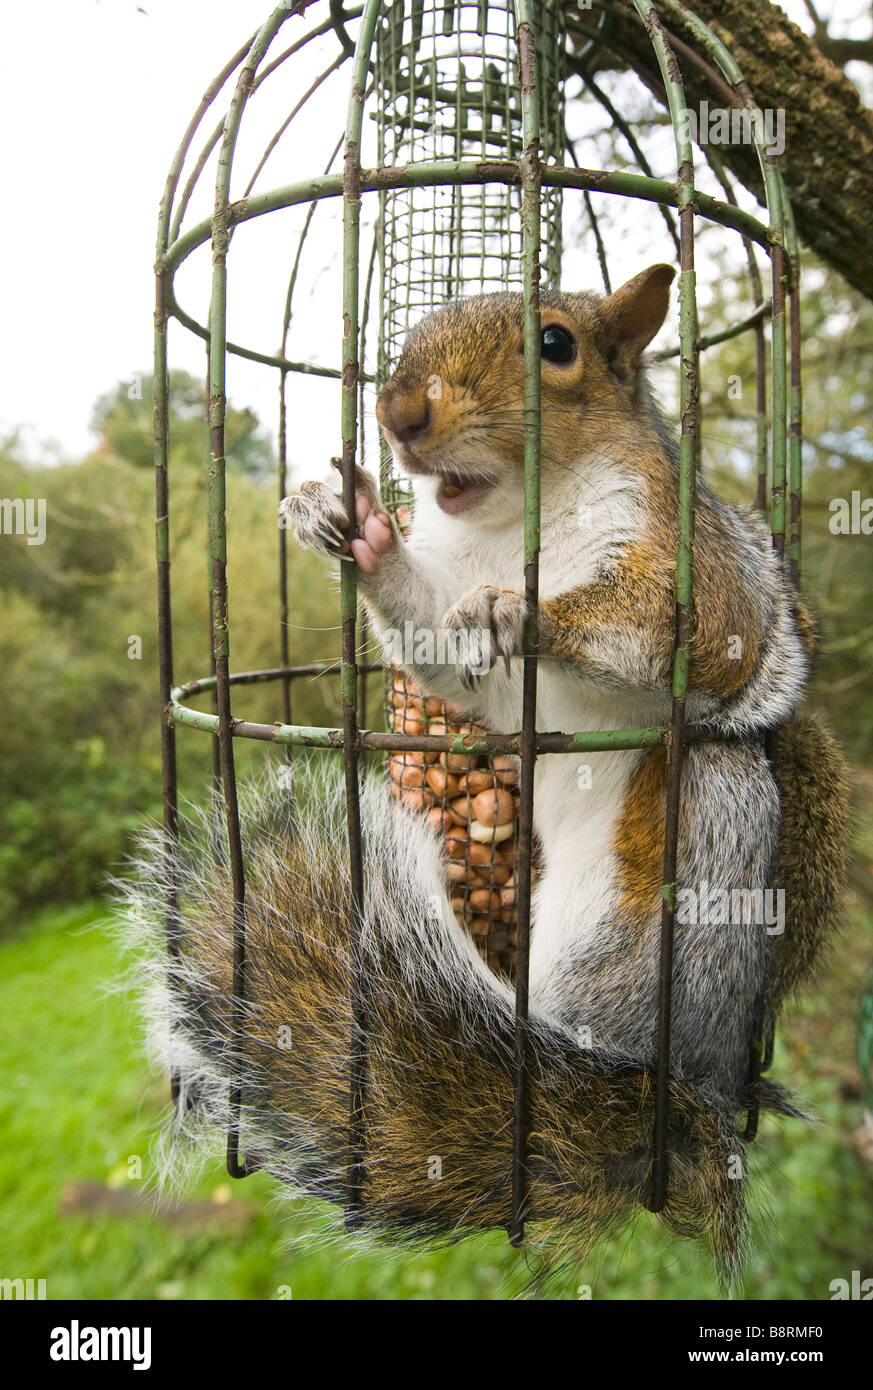 grey squirrel trapped inside a squirrel proof bird feeder. Black Bedroom Furniture Sets. Home Design Ideas